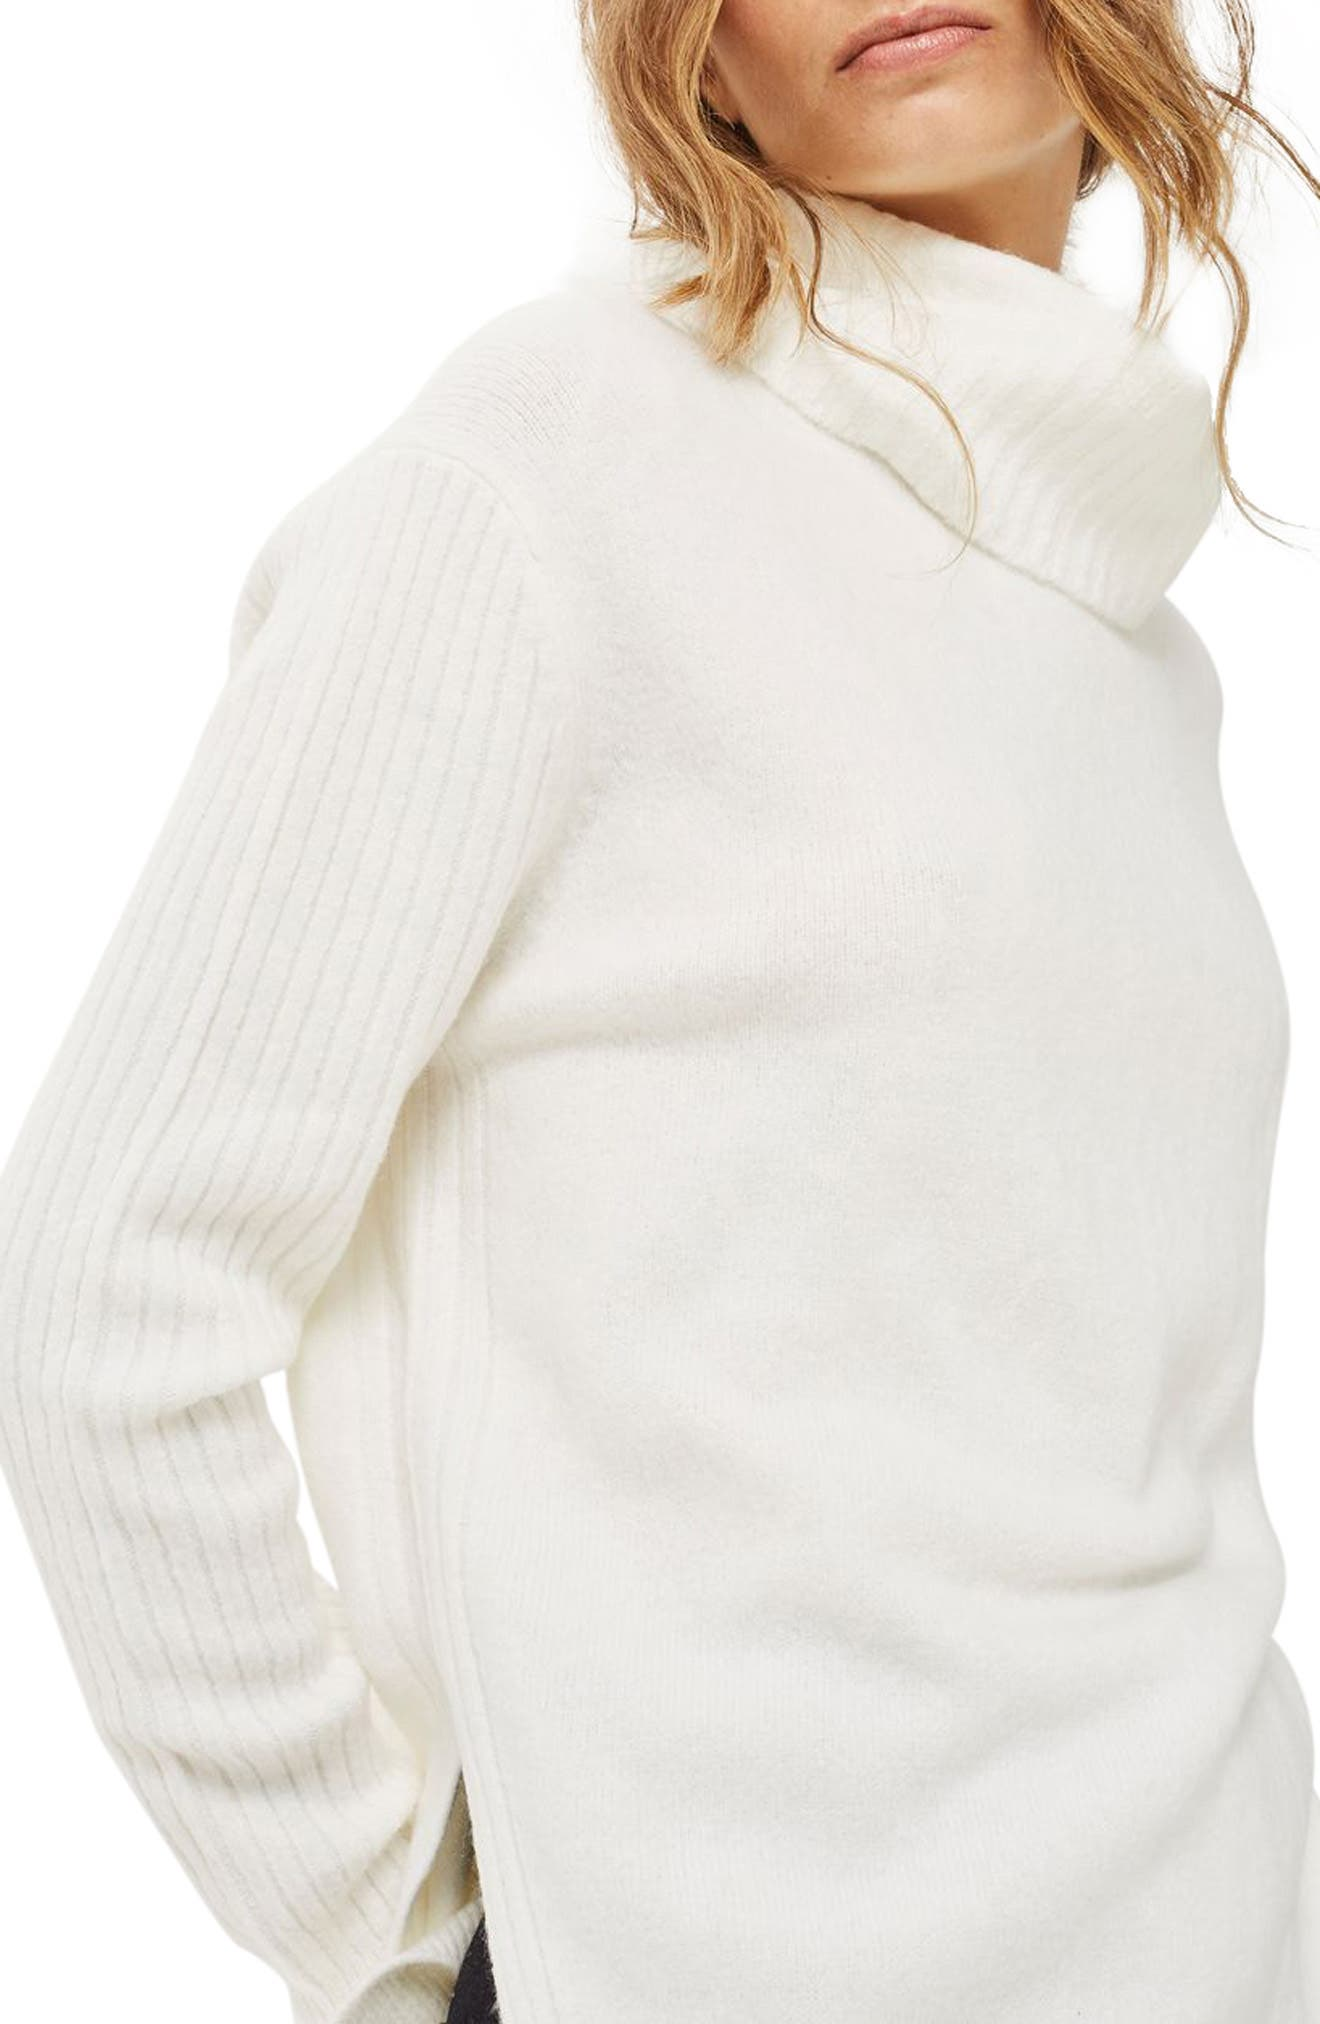 Oversize Turtleneck Sweater,                             Alternate thumbnail 2, color,                             Ivory